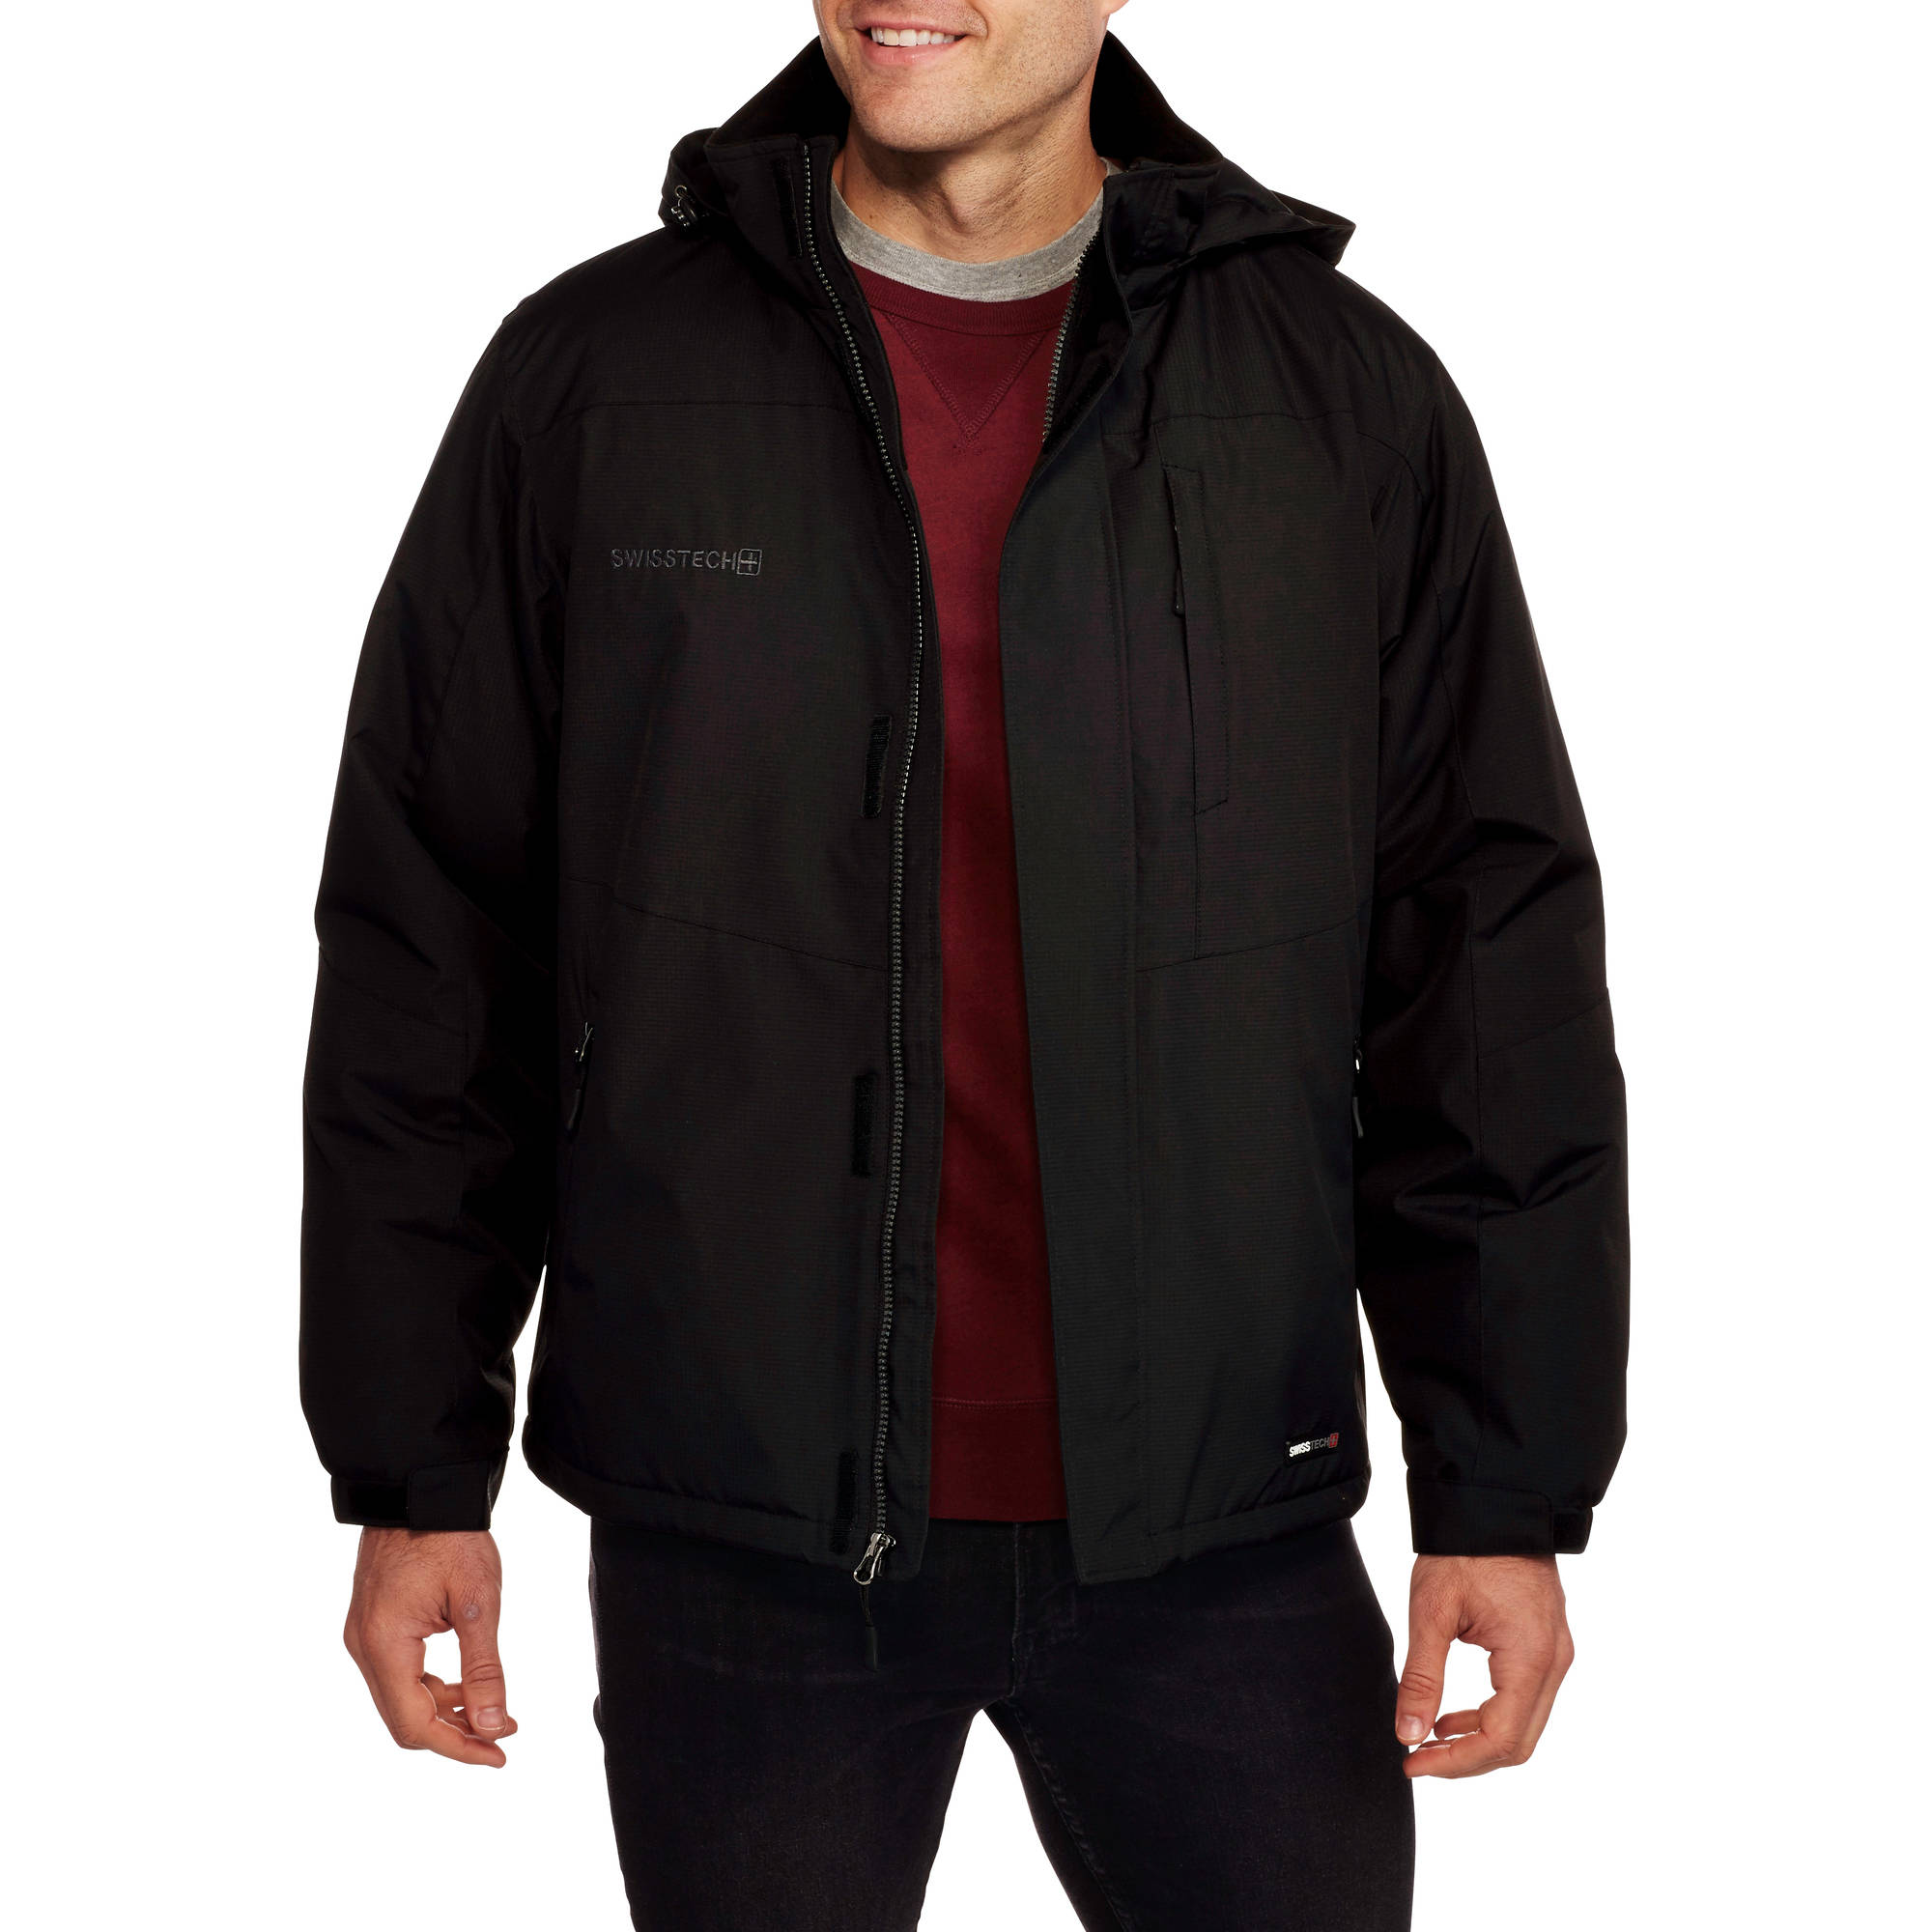 Swiss Tech Men's Midweight Jacket